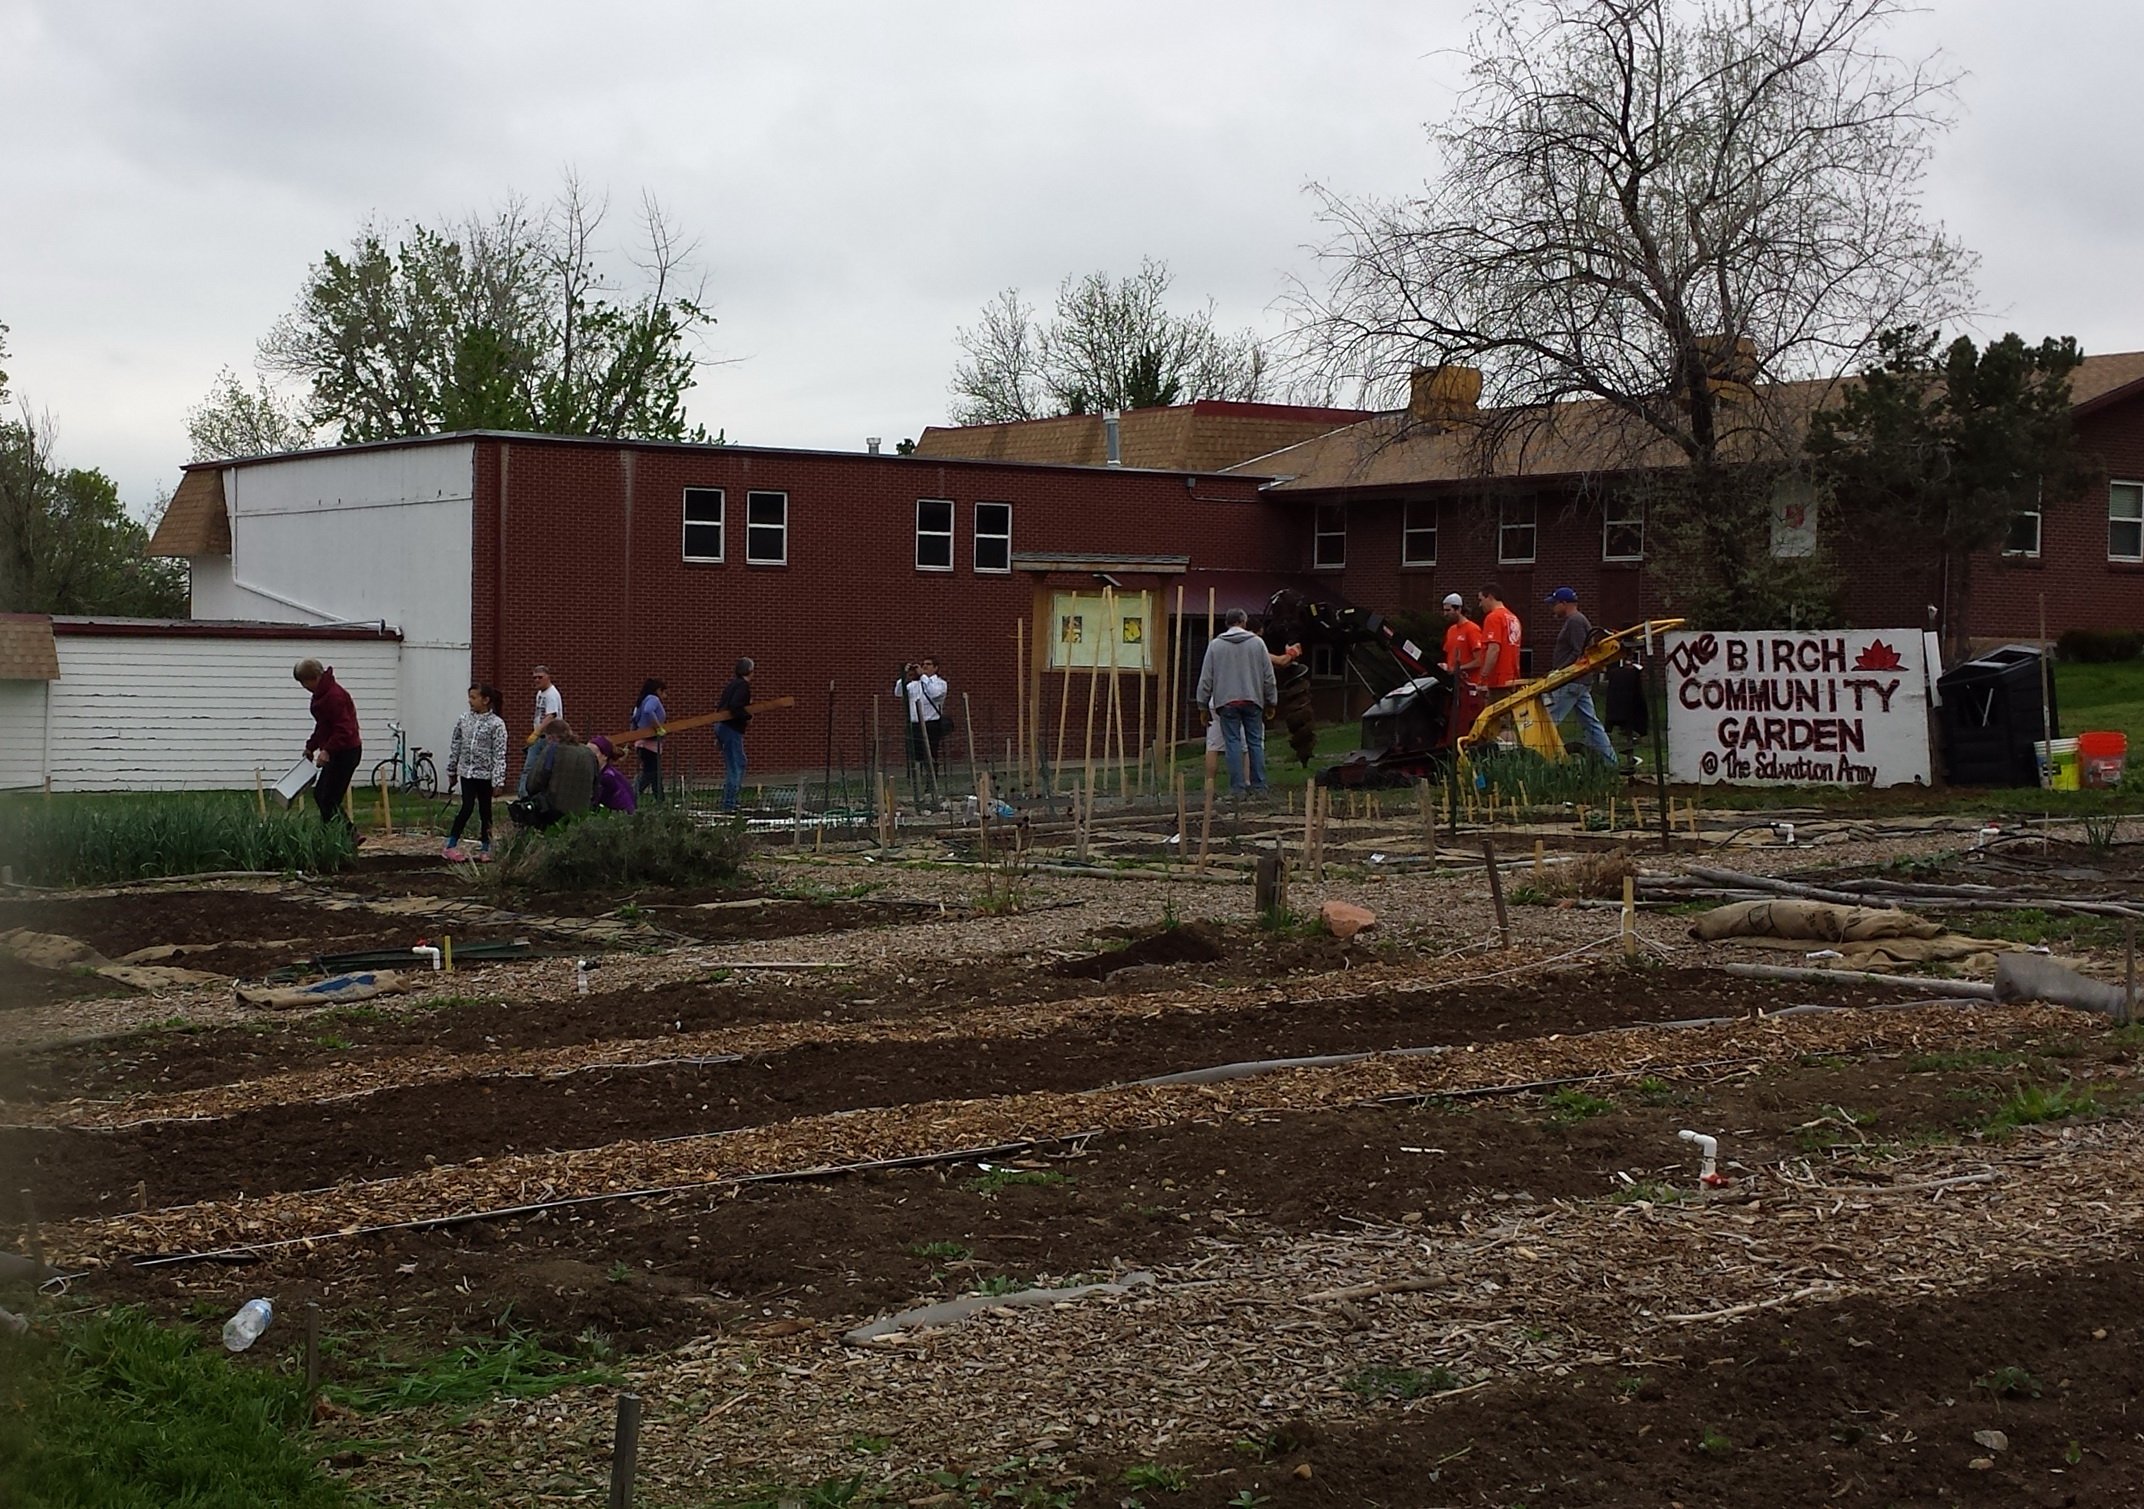 Thanks to Home Depot and Birch munity Garden Volunteers the fence